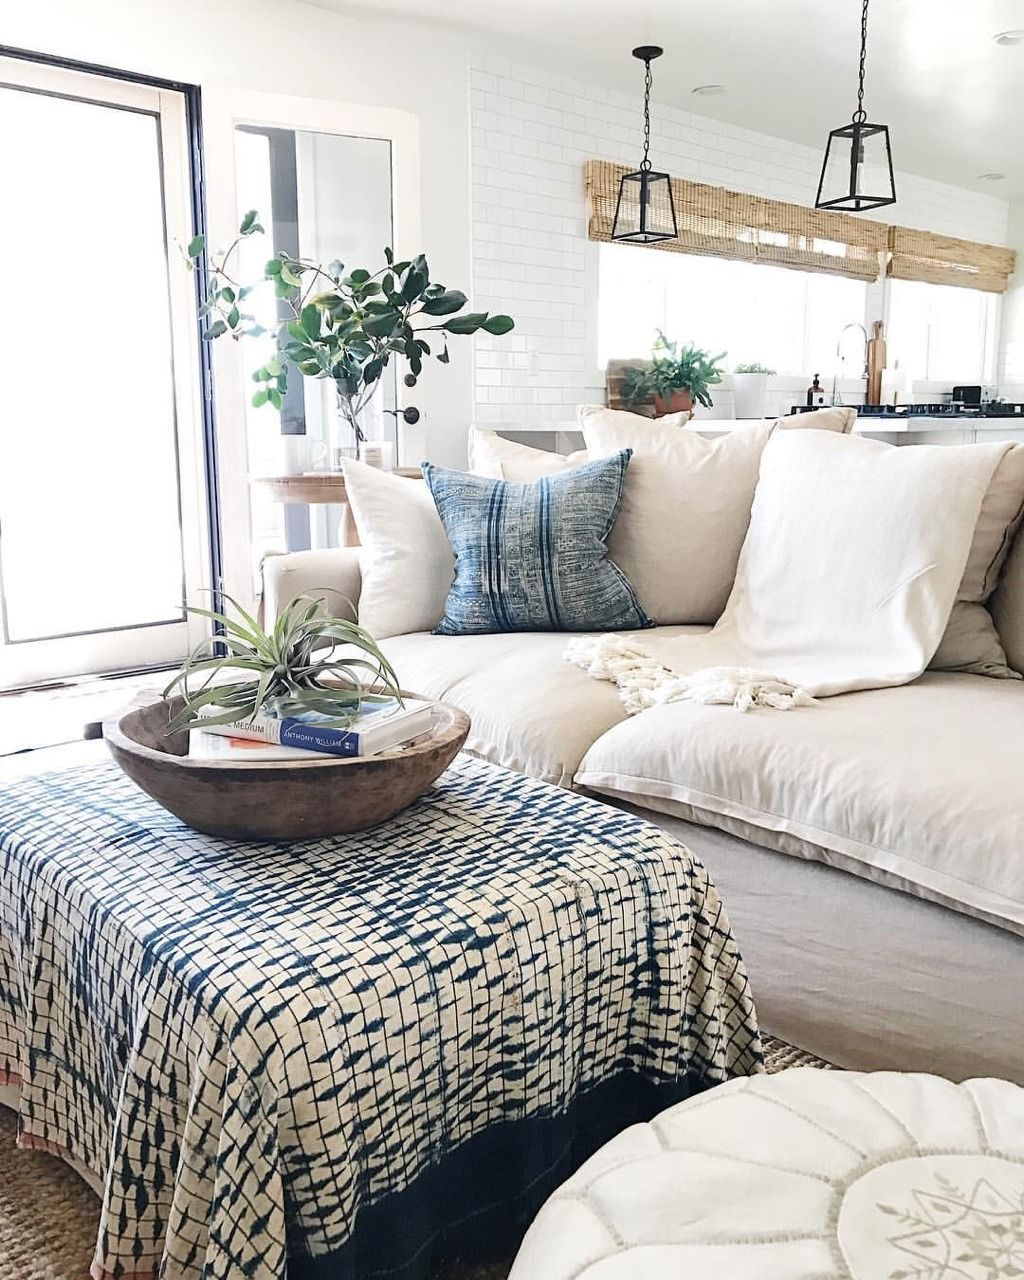 Pin By Michelle Schank On Home Decorating: Diy Living Room Decor, Home